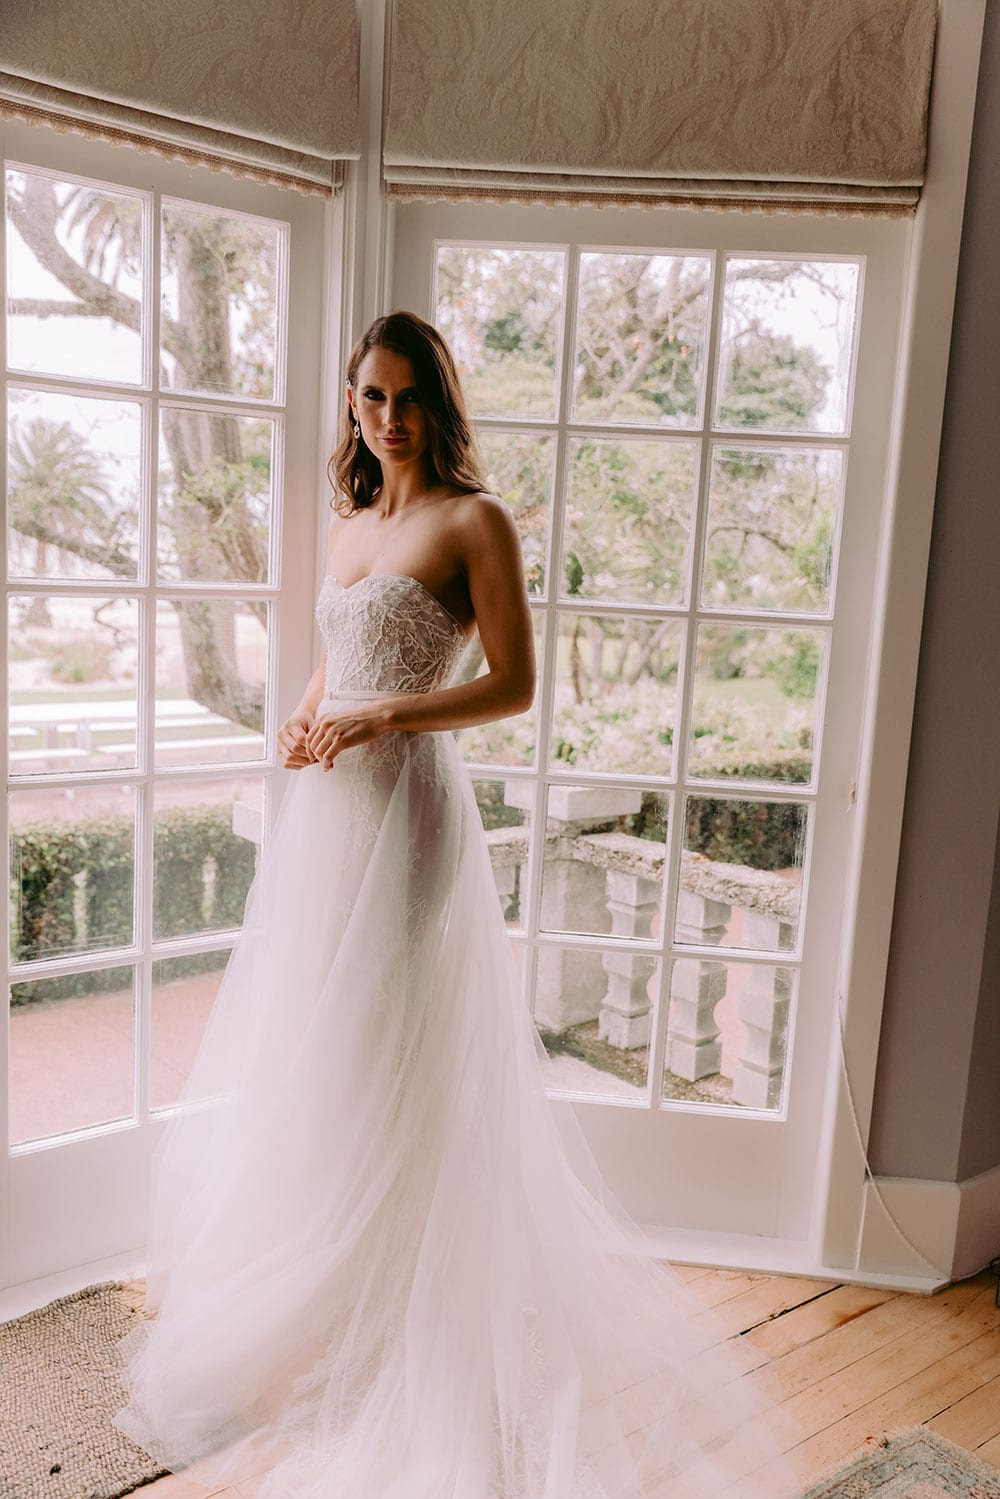 Nera Wedding gown from Vinka Design - Feminine, form-fitting strapless lace wedding dress. Boned stretch base that sculpts and hugs the figure with delicate blossom lace appliqued by hand in to flatter the shape of the body. Model wearing gown in beautifully lit windows of feature room.